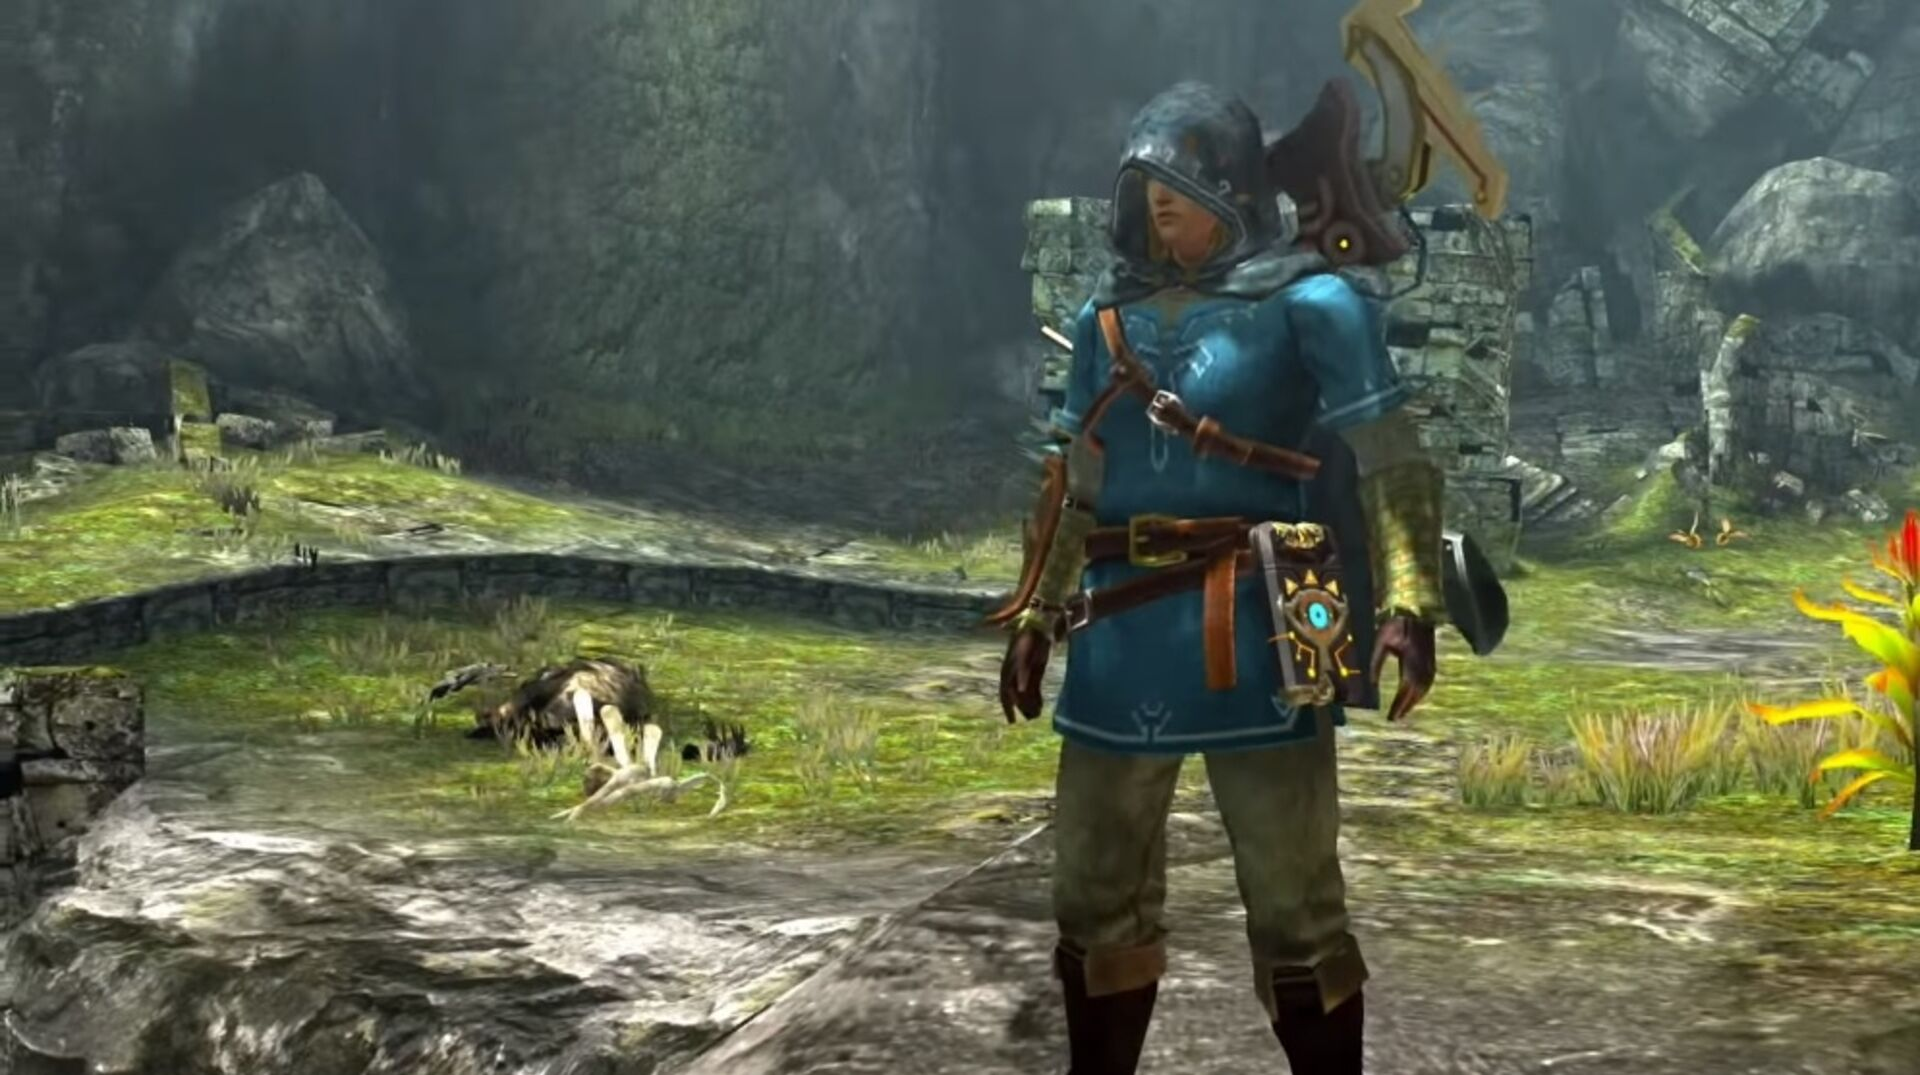 You can play as Link in Monster Hunter Generations Ultimate on